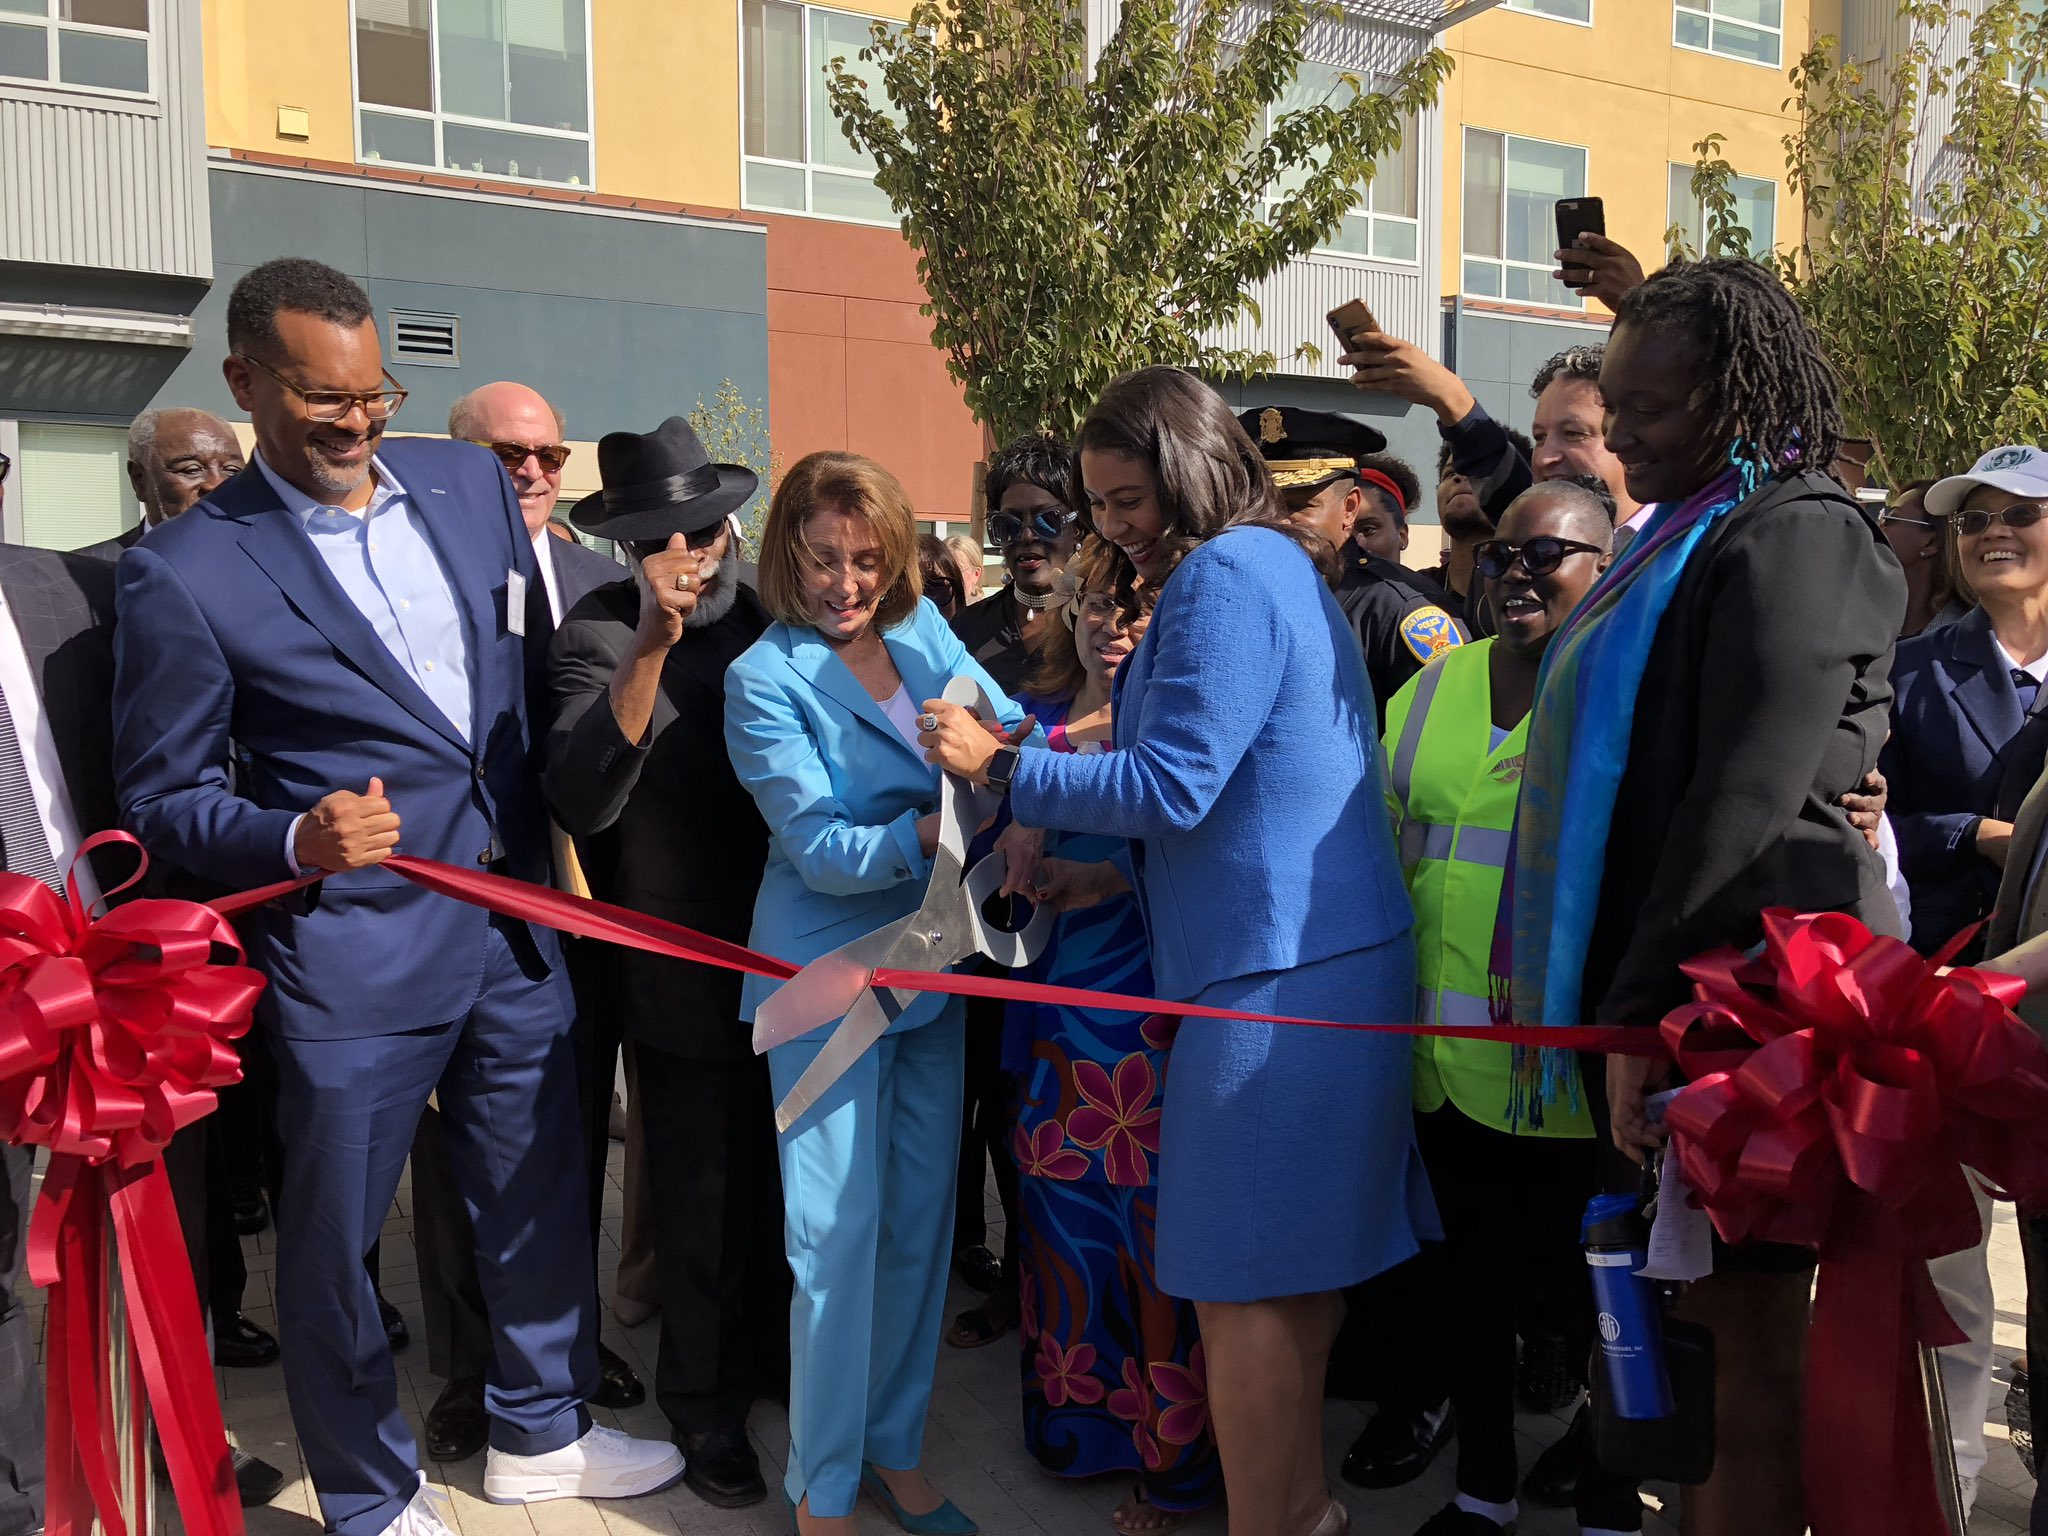 Mayor London Breed and Leader Nancy Pelosi celebrating the grand opening of the revitalized Alice Griffith community